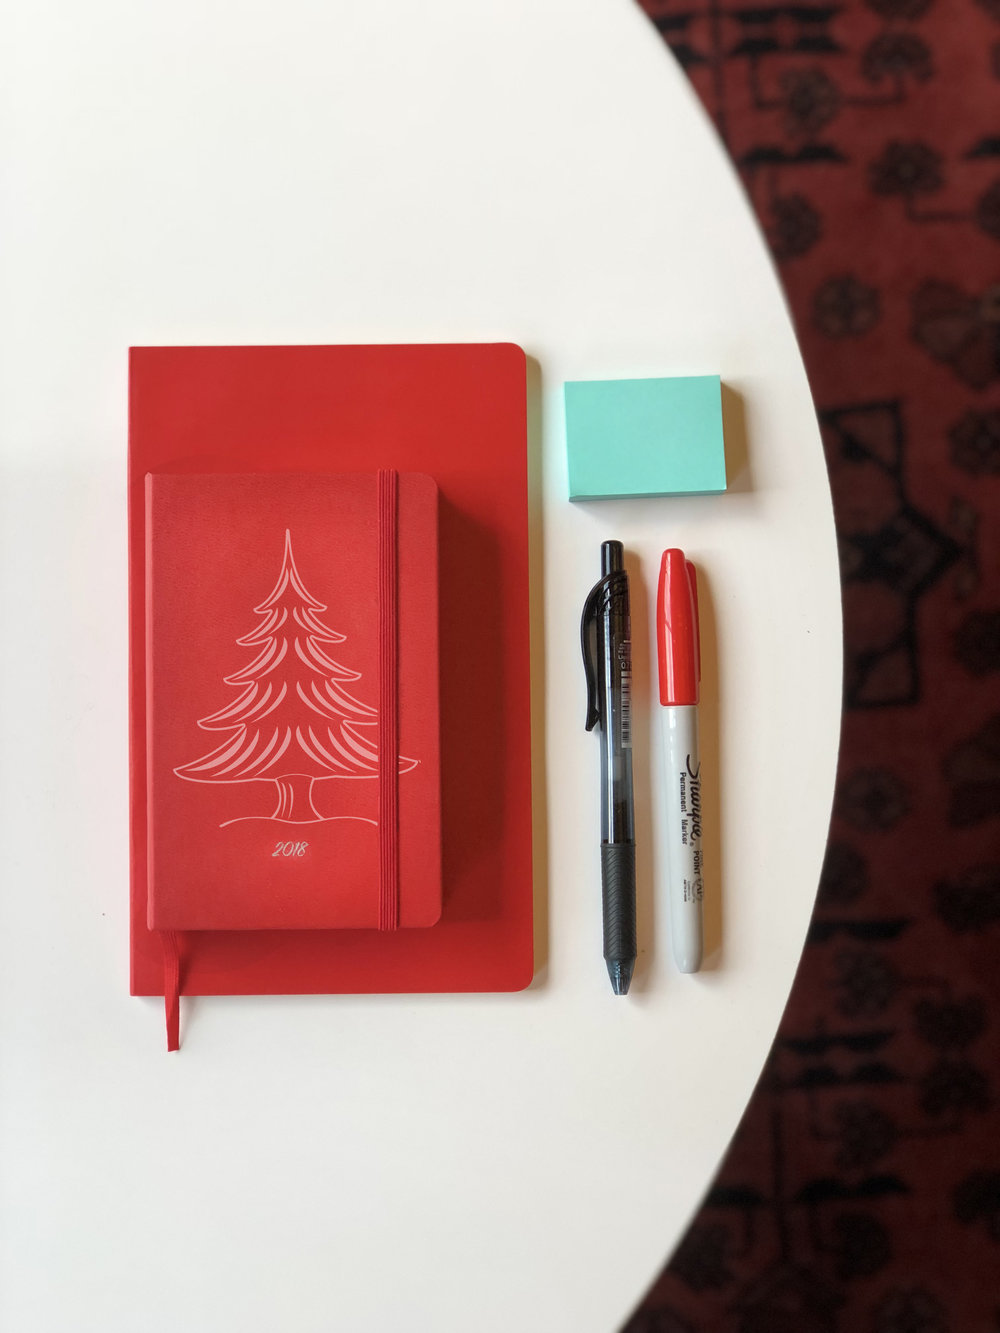 Christtmas-in-july-lily-muffins-blog-notebooks